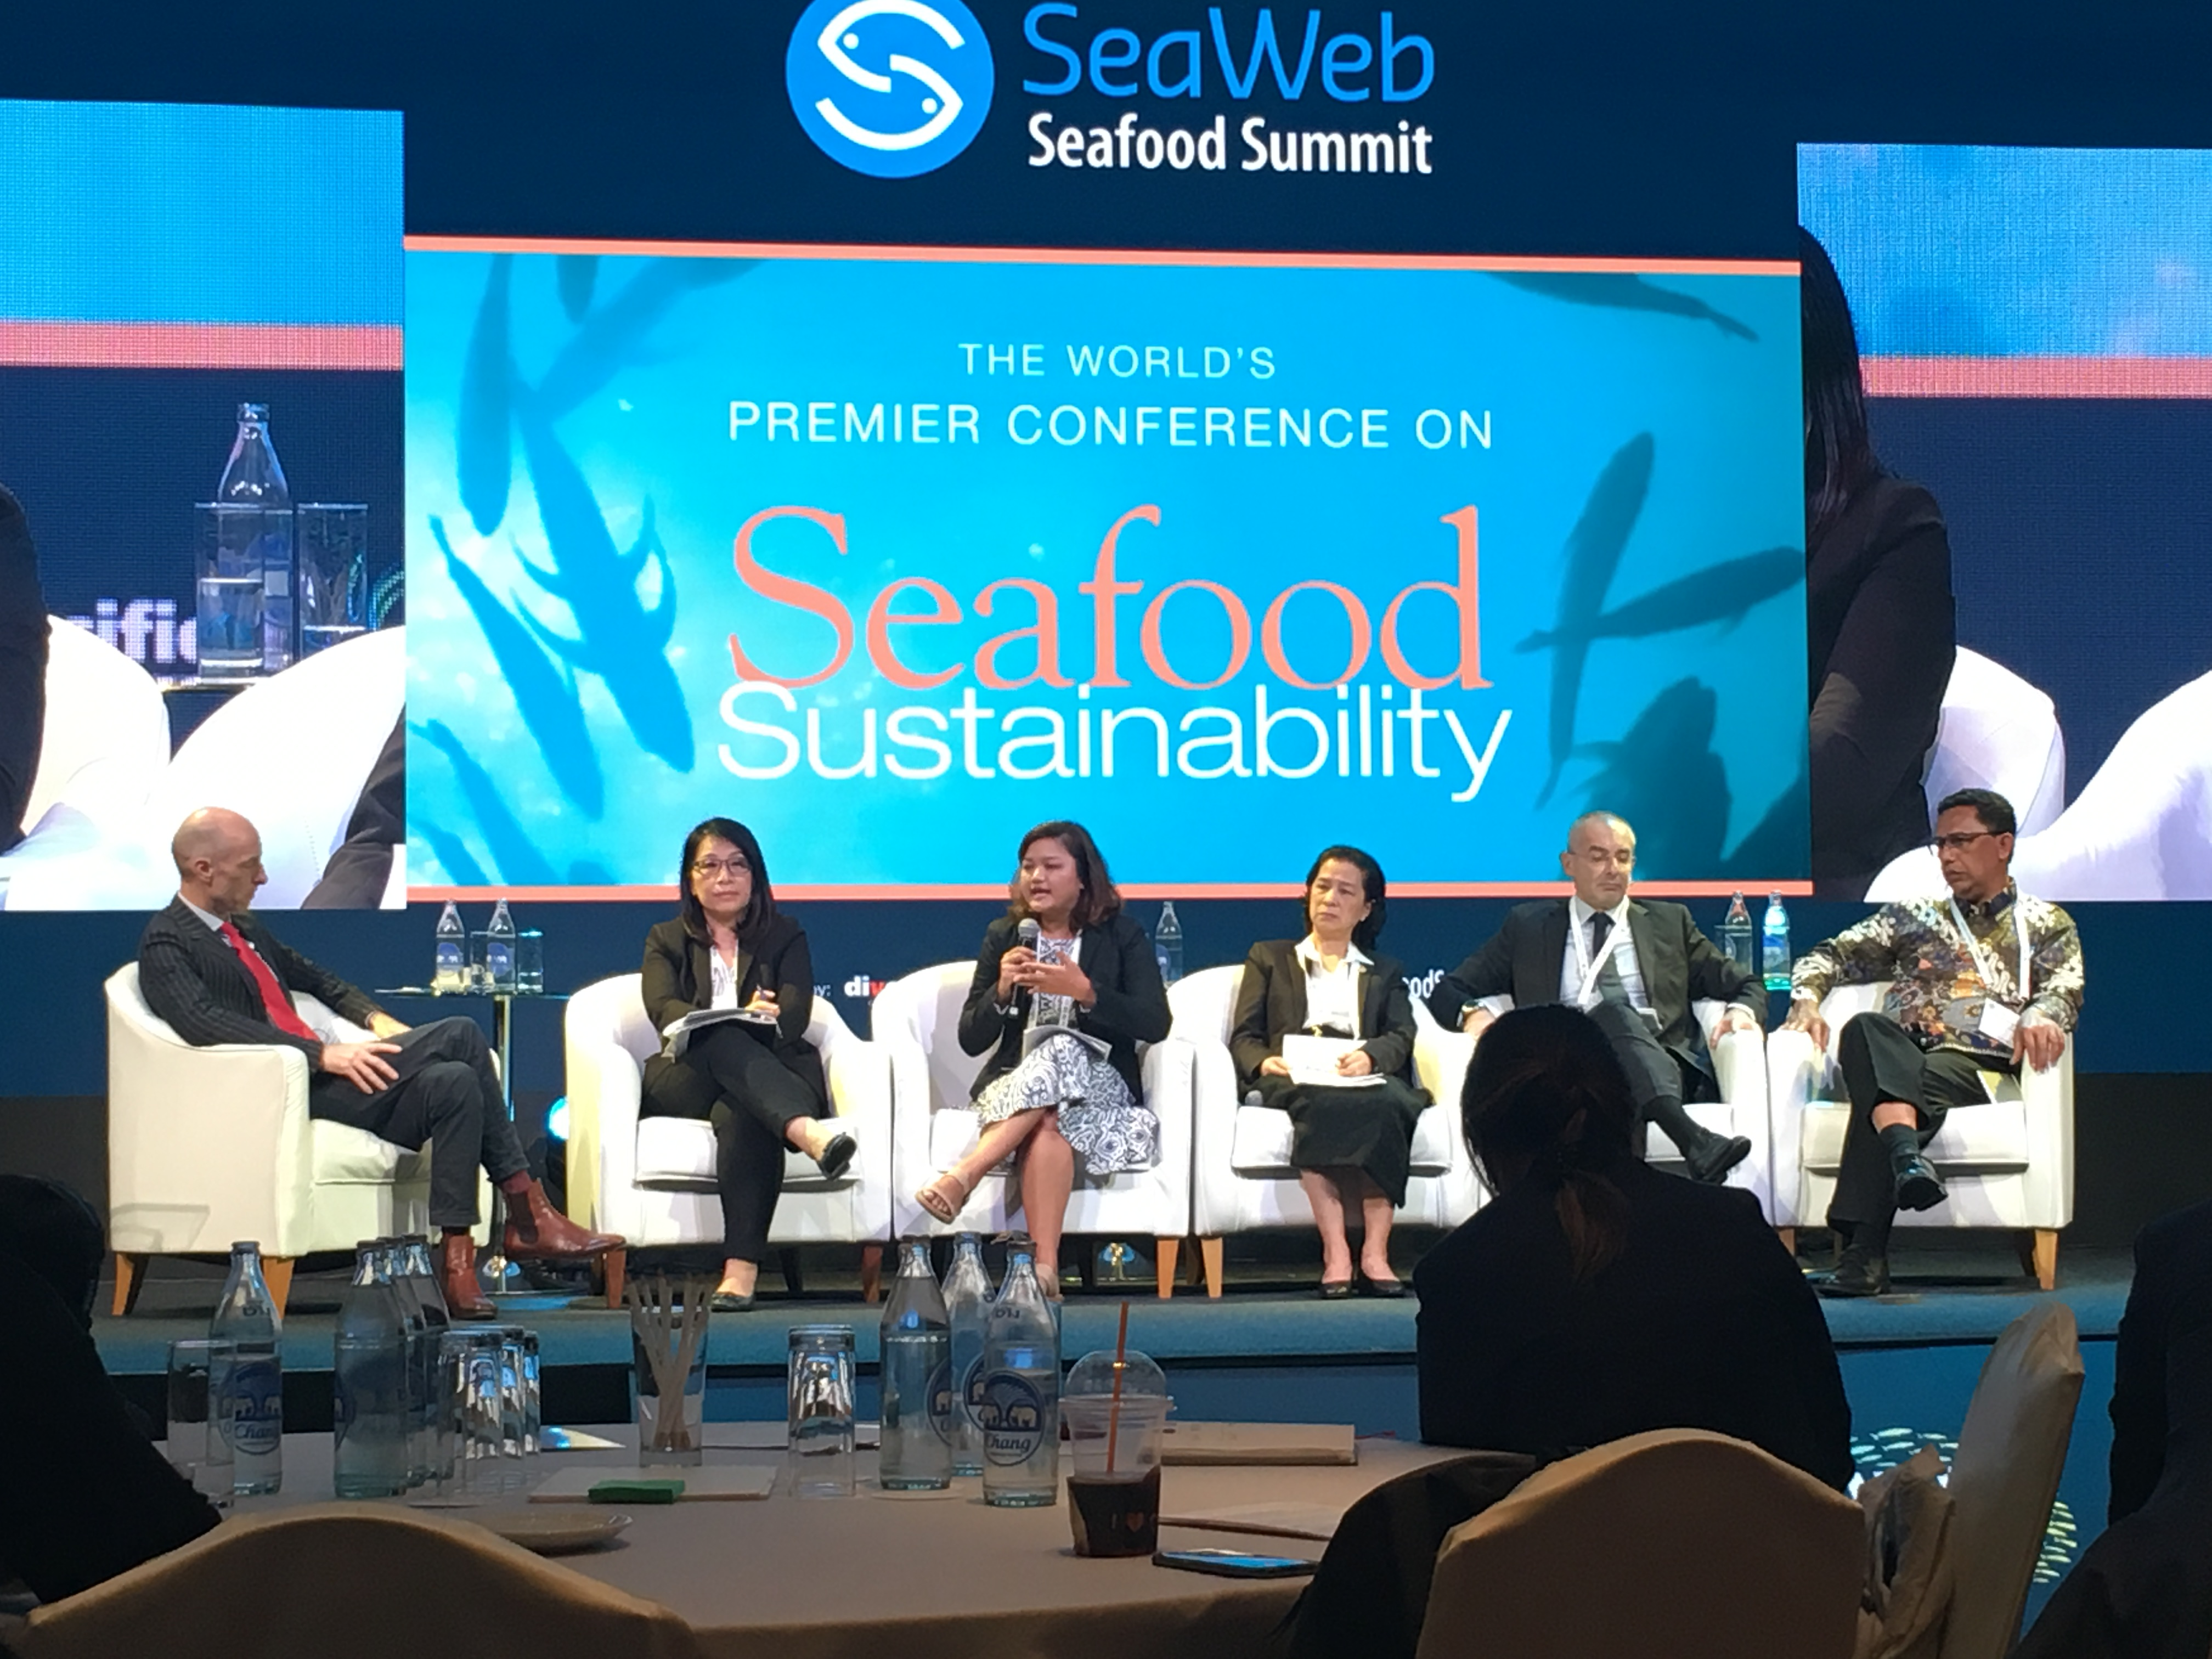 SeaWeb 2019: No SeaWeb Seafood Summit planned for 2020